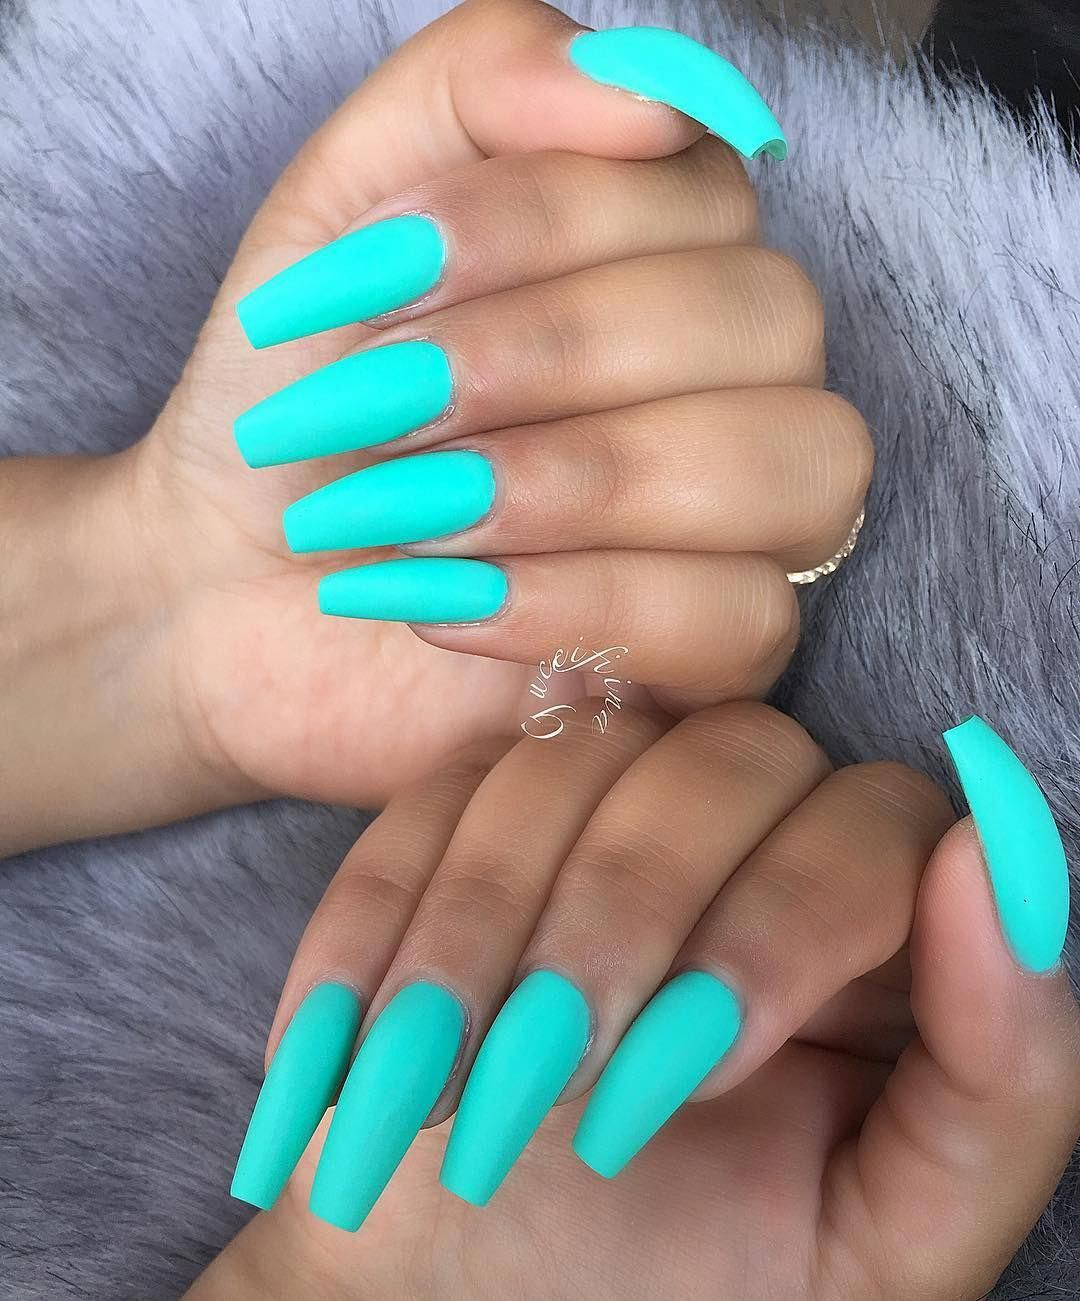 Pinterest Stacey Belle Fakenail Teal Acrylic Nails Turquoise Nails Long Acrylic Nails Coffin